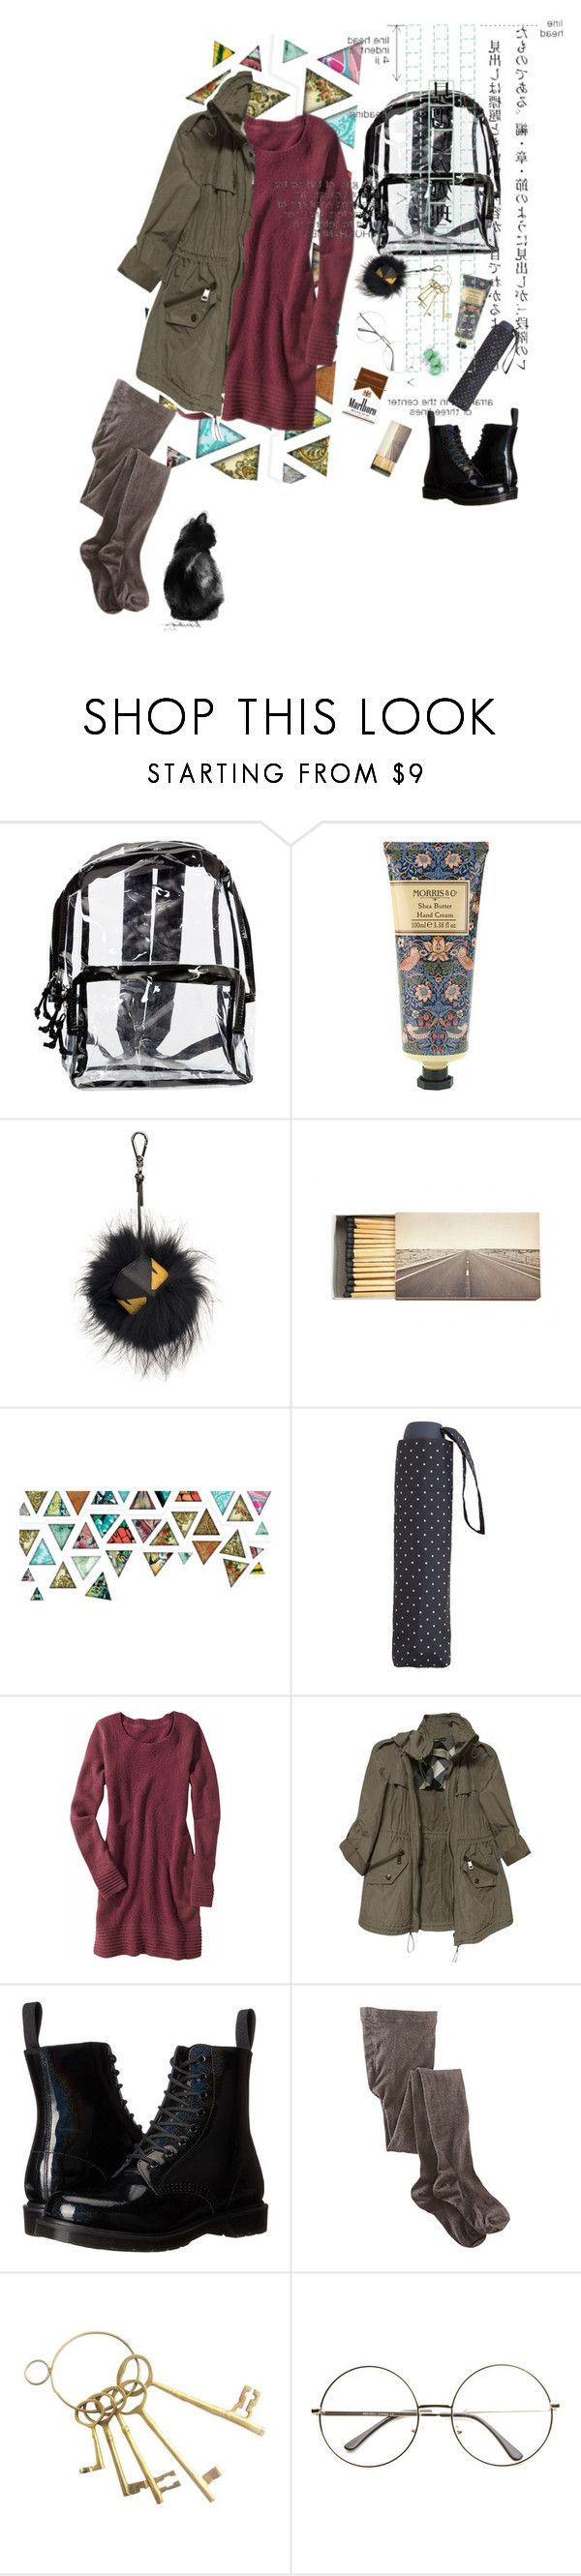 """why does it always rain on me..?"" by ghmahi ❤ liked on Polyvore featuring William Morris, Fendi, Jayson Home, Salt Water Sandals, MANGO, Shades of Grey by Micah Cohen, Title Nine, Burberry, Dr. Martens and Smartwool"